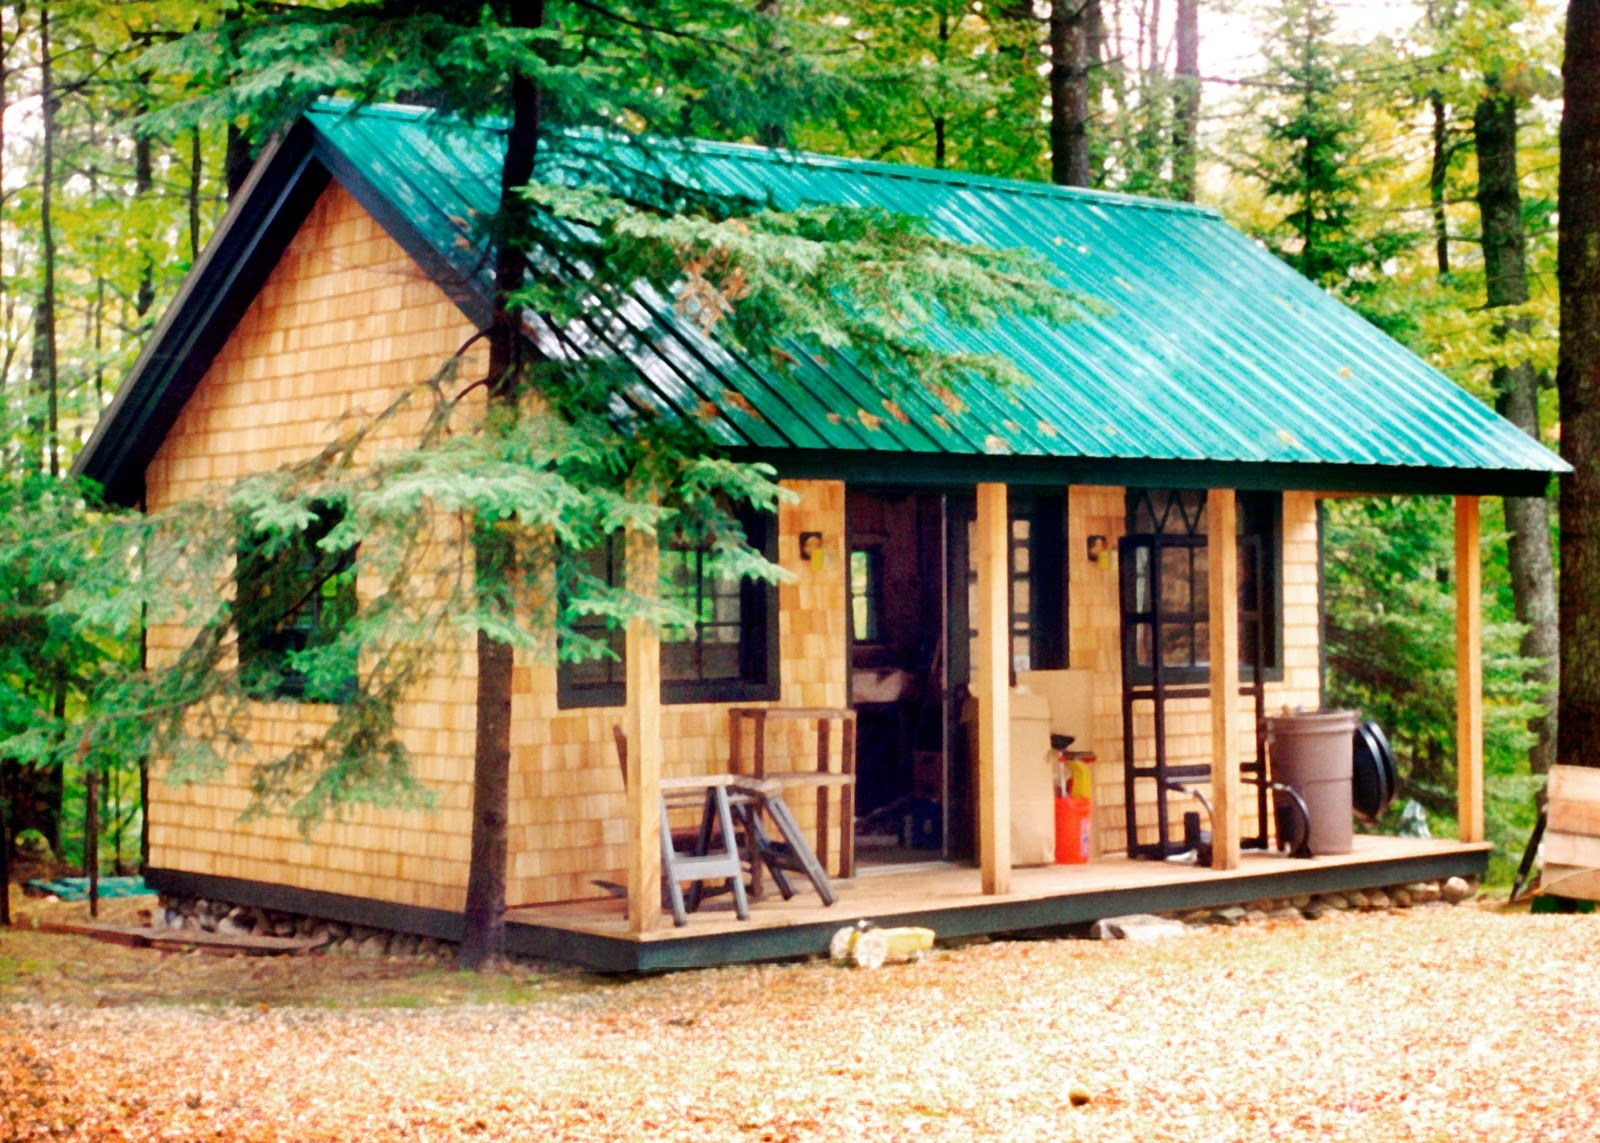 17 Best 1000 images about cabins on Pinterest Backyard cottage Tiny